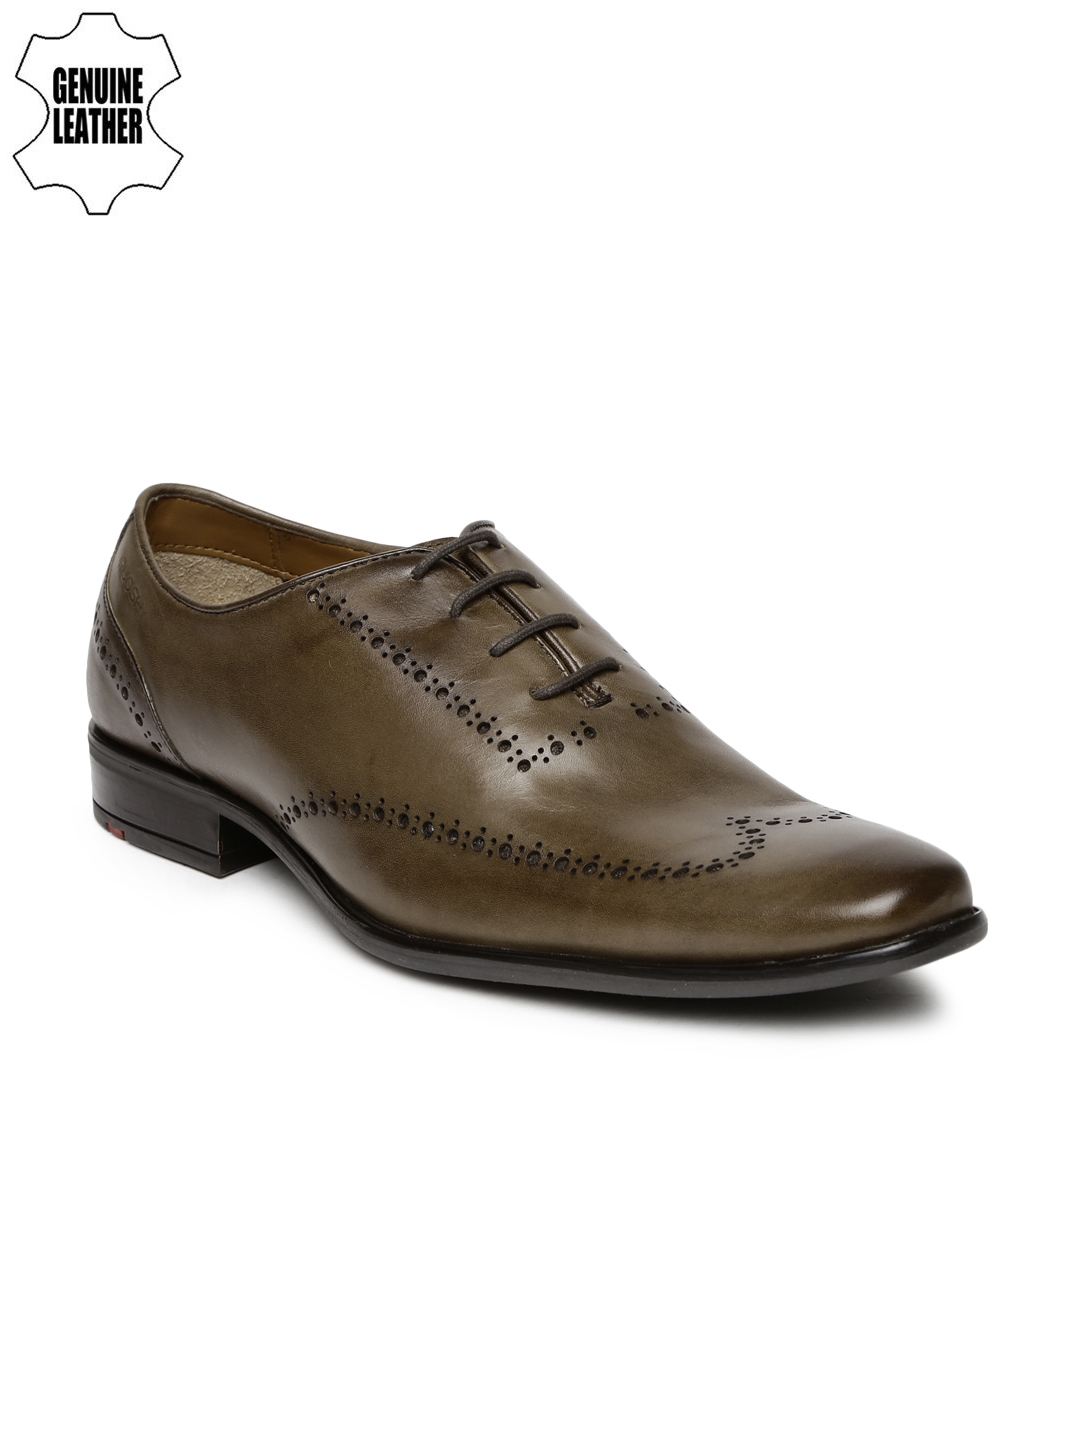 ea6f3a514168 Buy Ruosh Work Men Olive Green Genuine Leather Semiformal Brogues ...